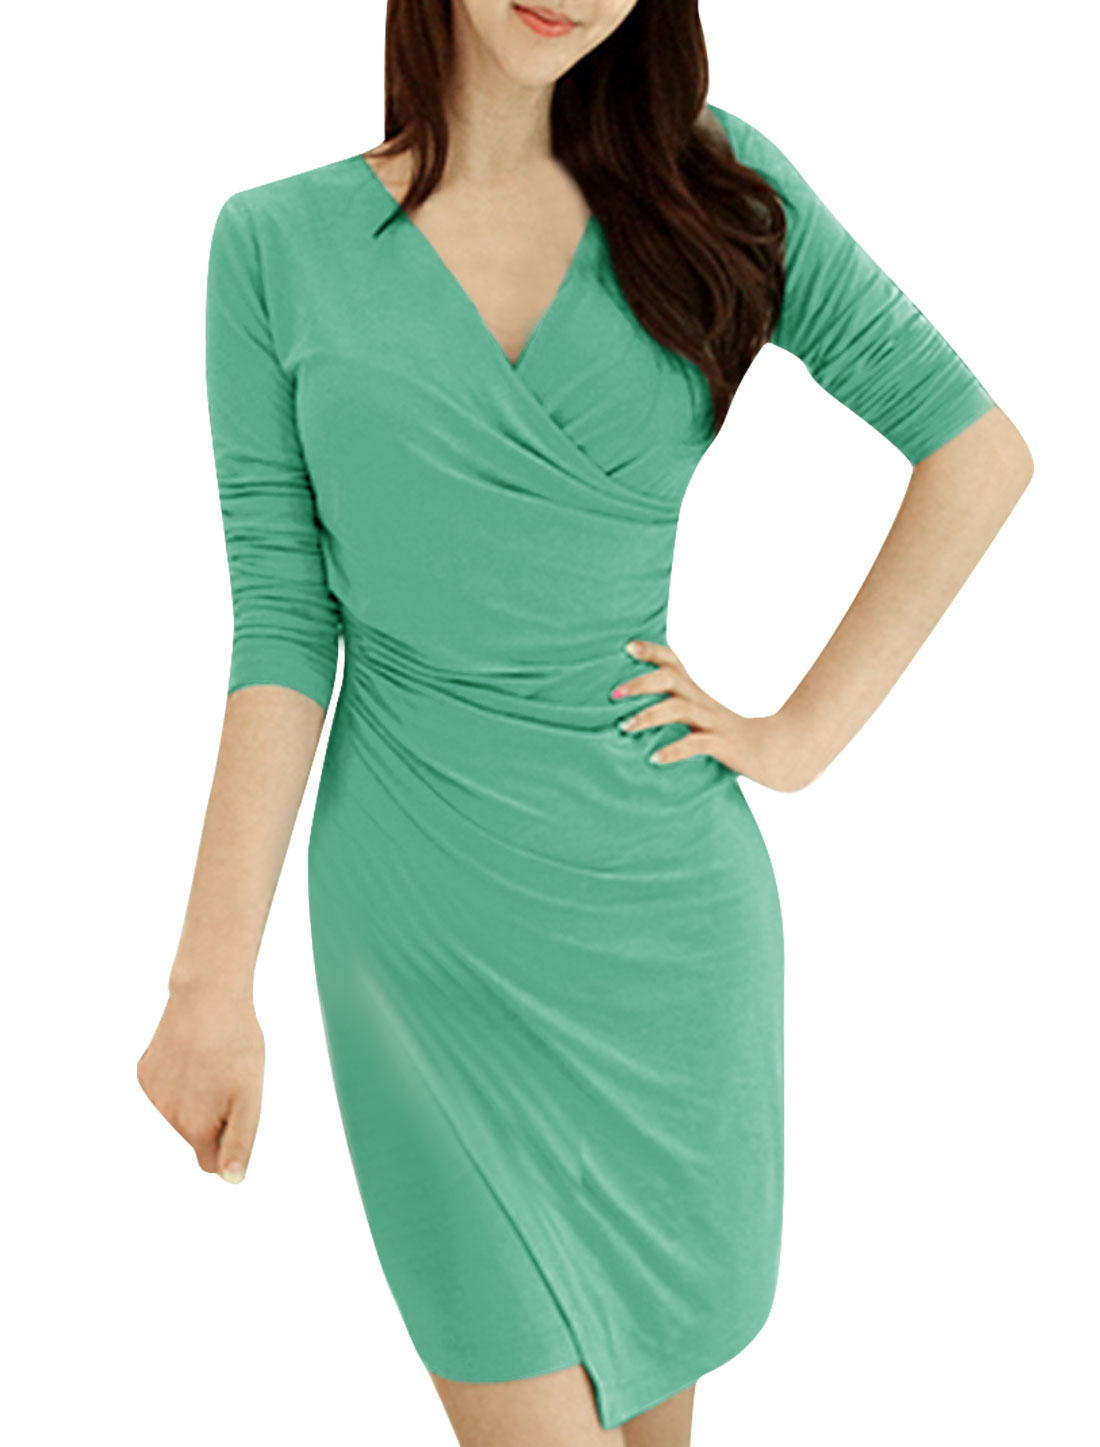 Lady Wrap-style Front Crossover V Neck Bodycon Dress Green M